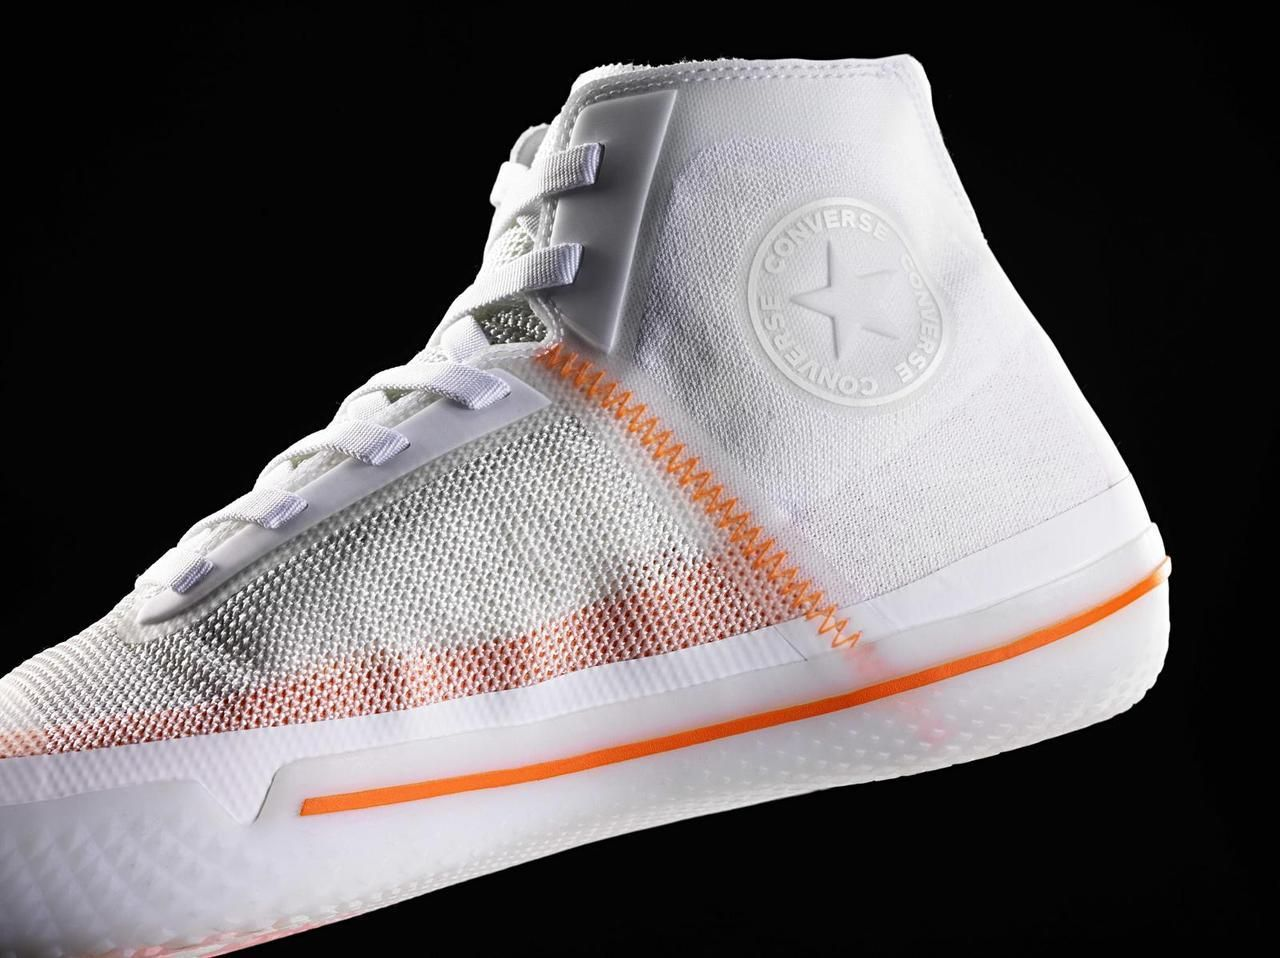 Converse and Nike debut All Star Pro BB basketball shoe